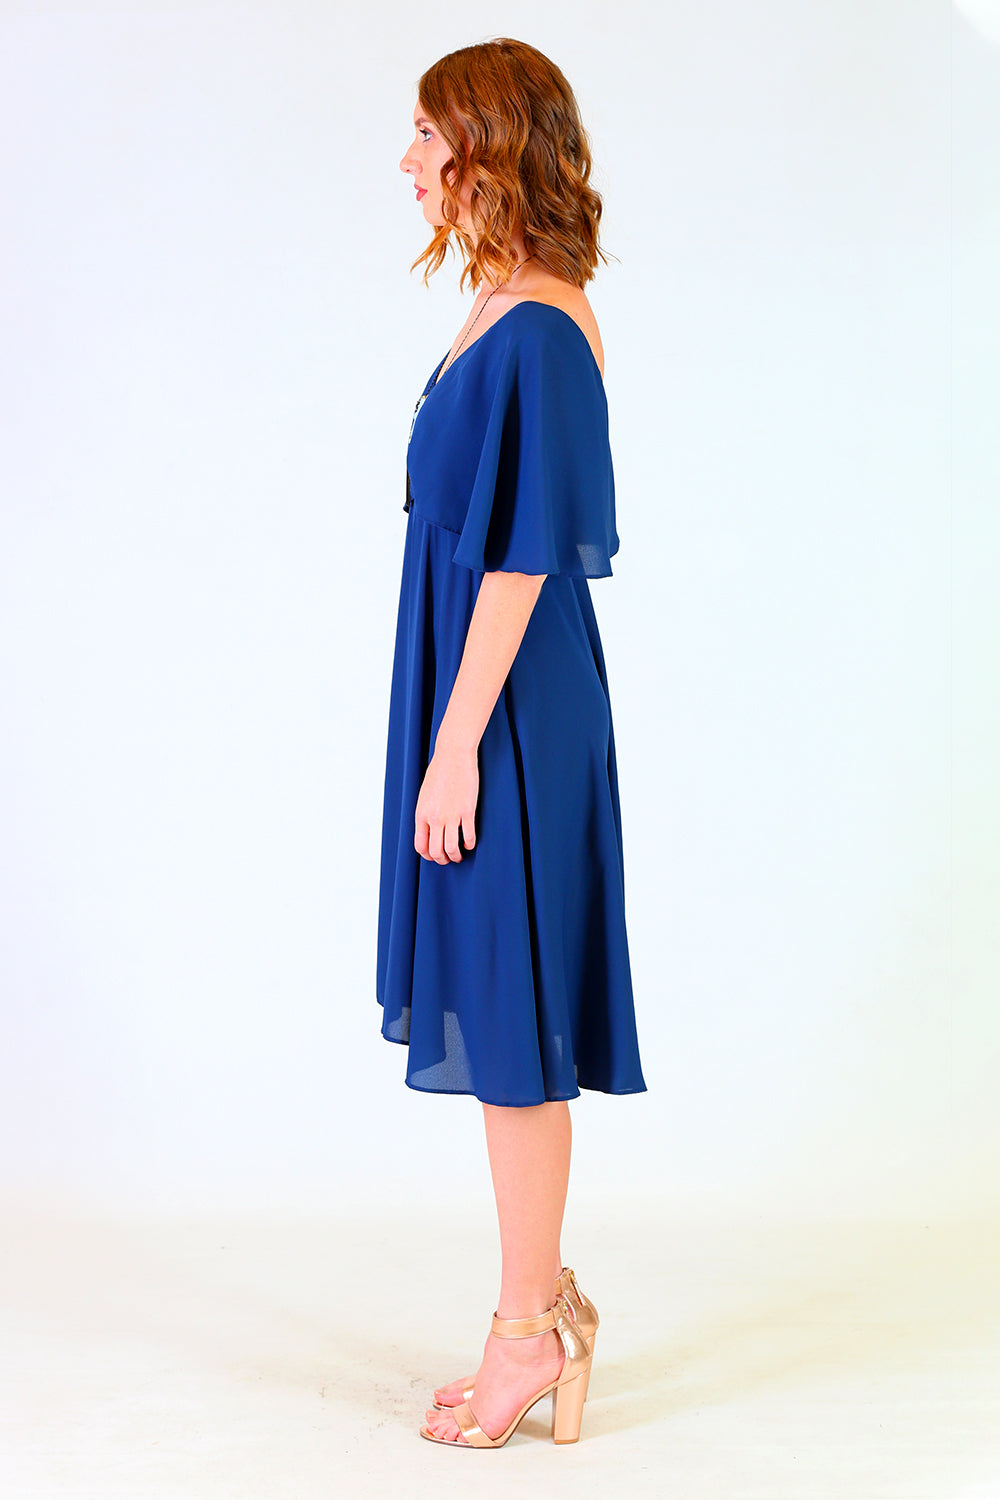 Athena Dress - LAST ONE